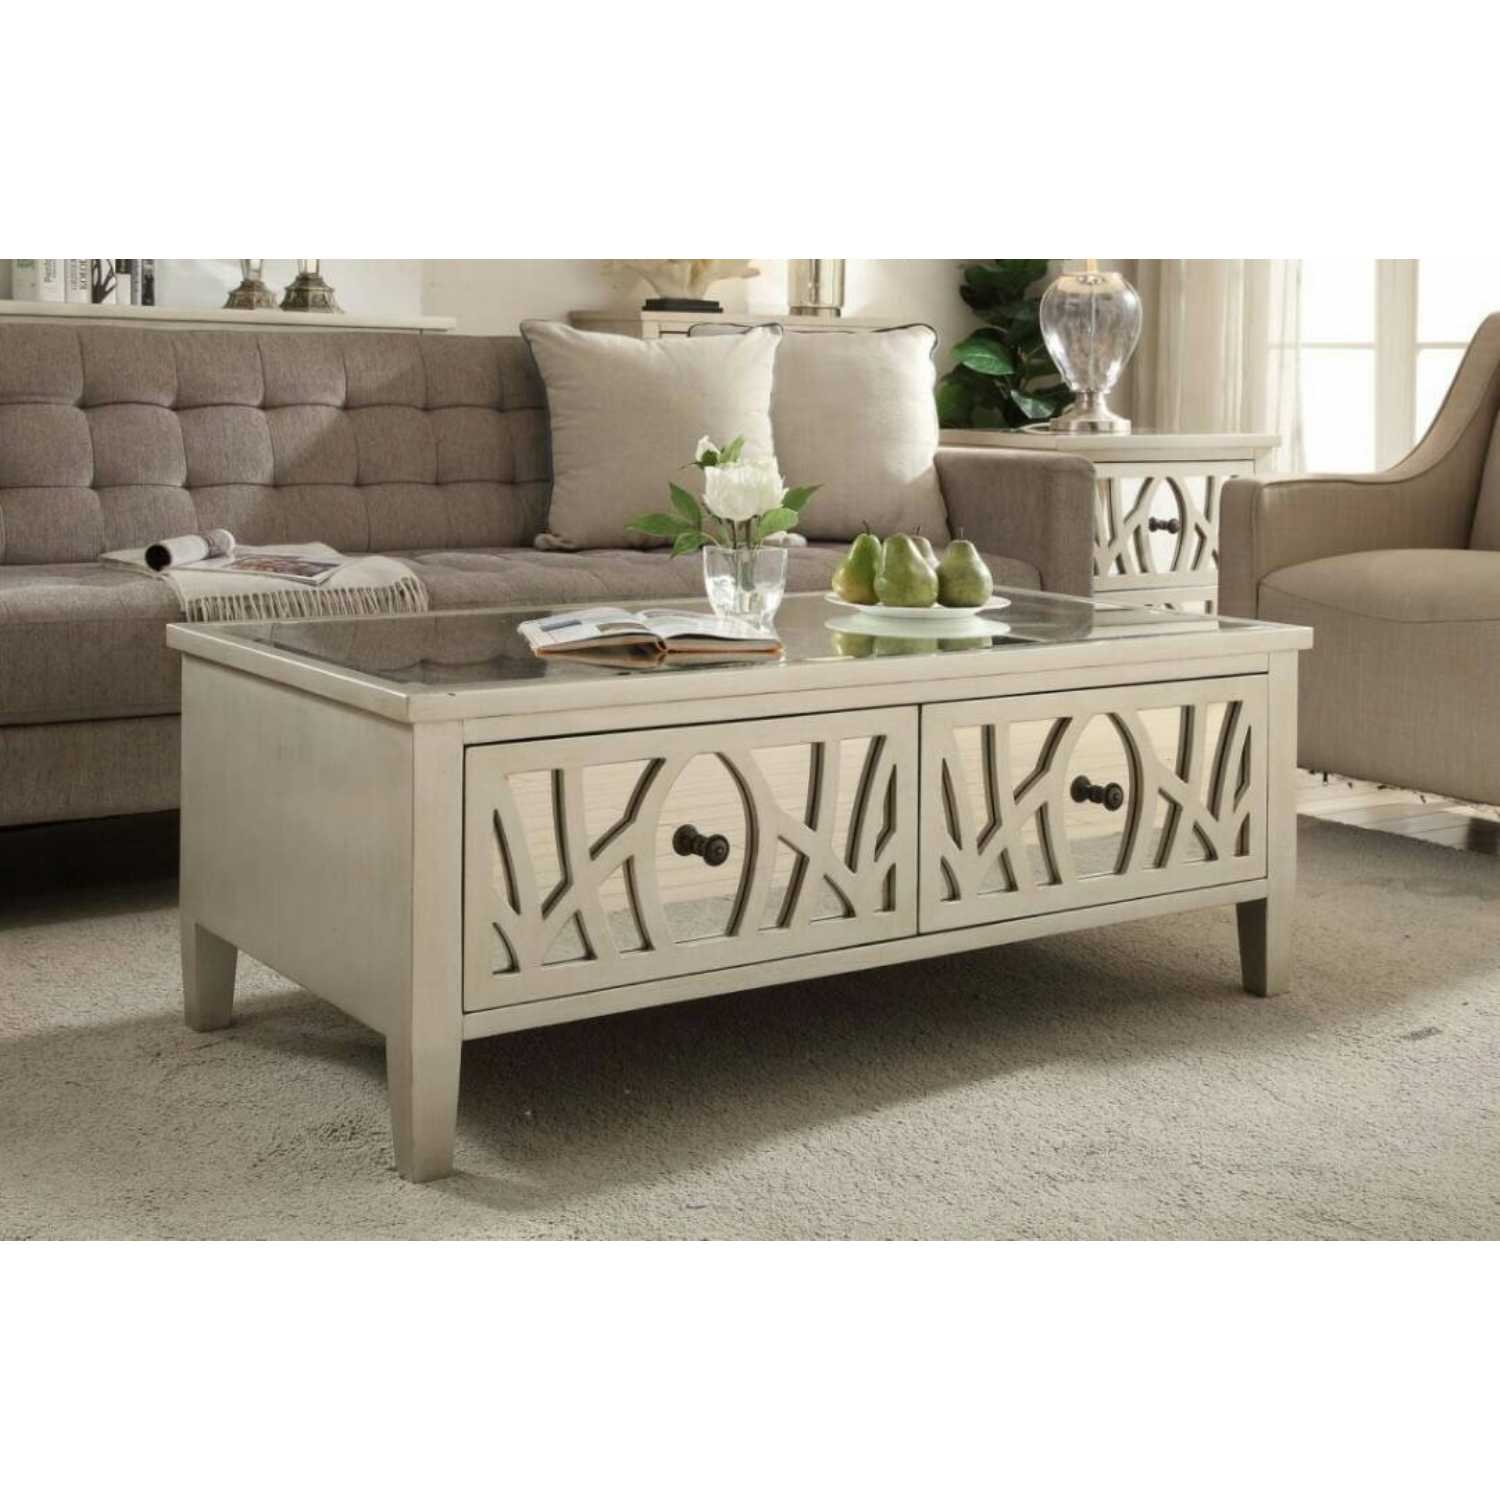 Gallo Coffee Table With Mirrored Glass Fronted Drawers